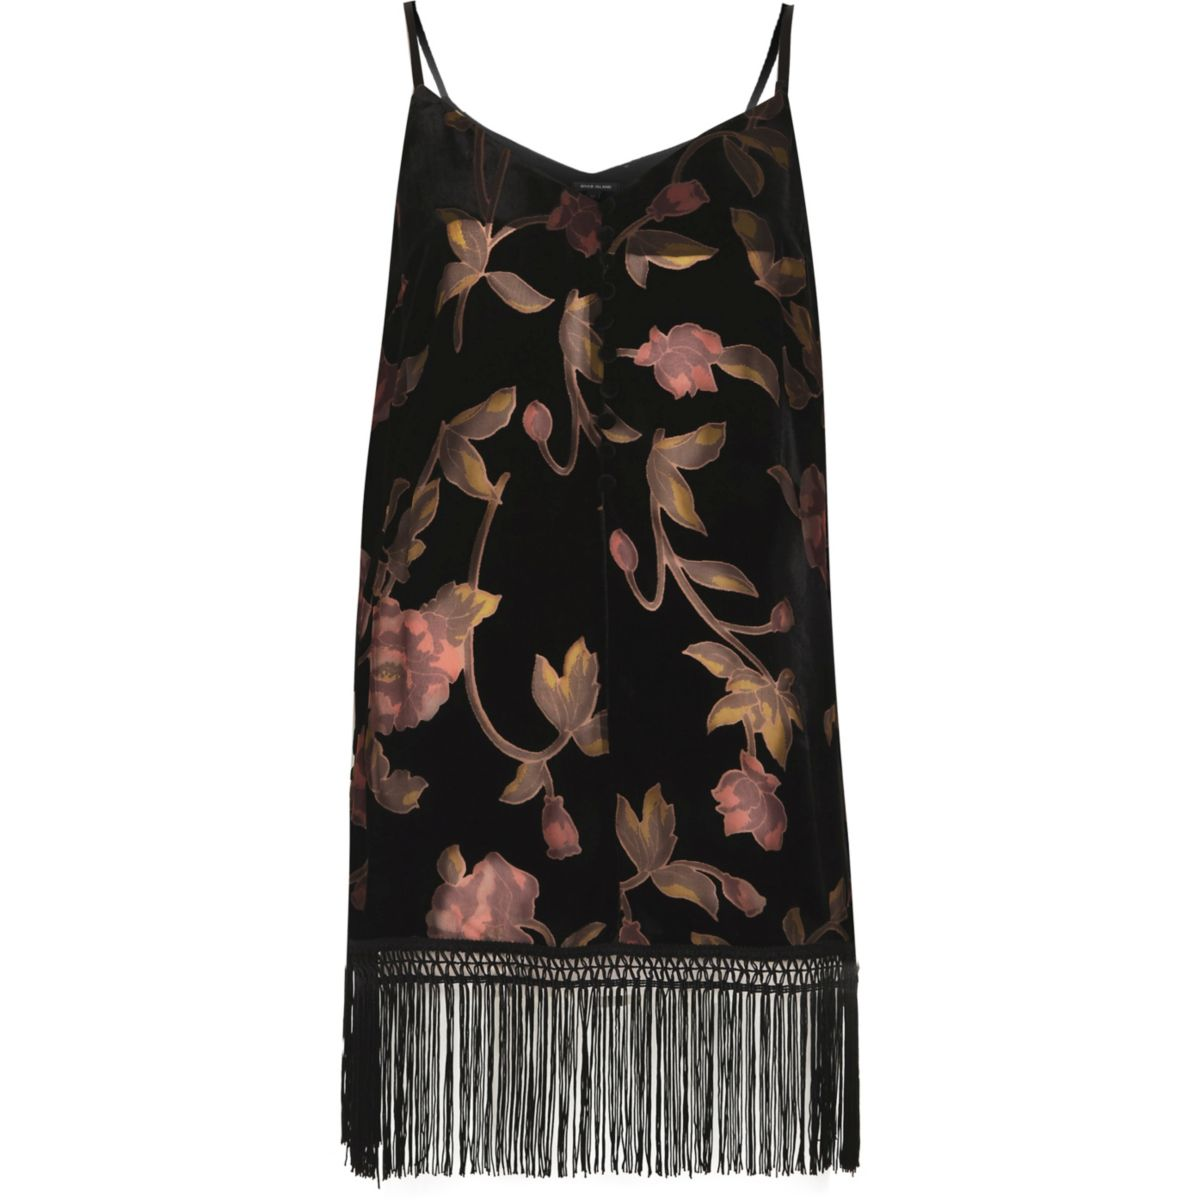 Black burnout floral fringe hem cami top